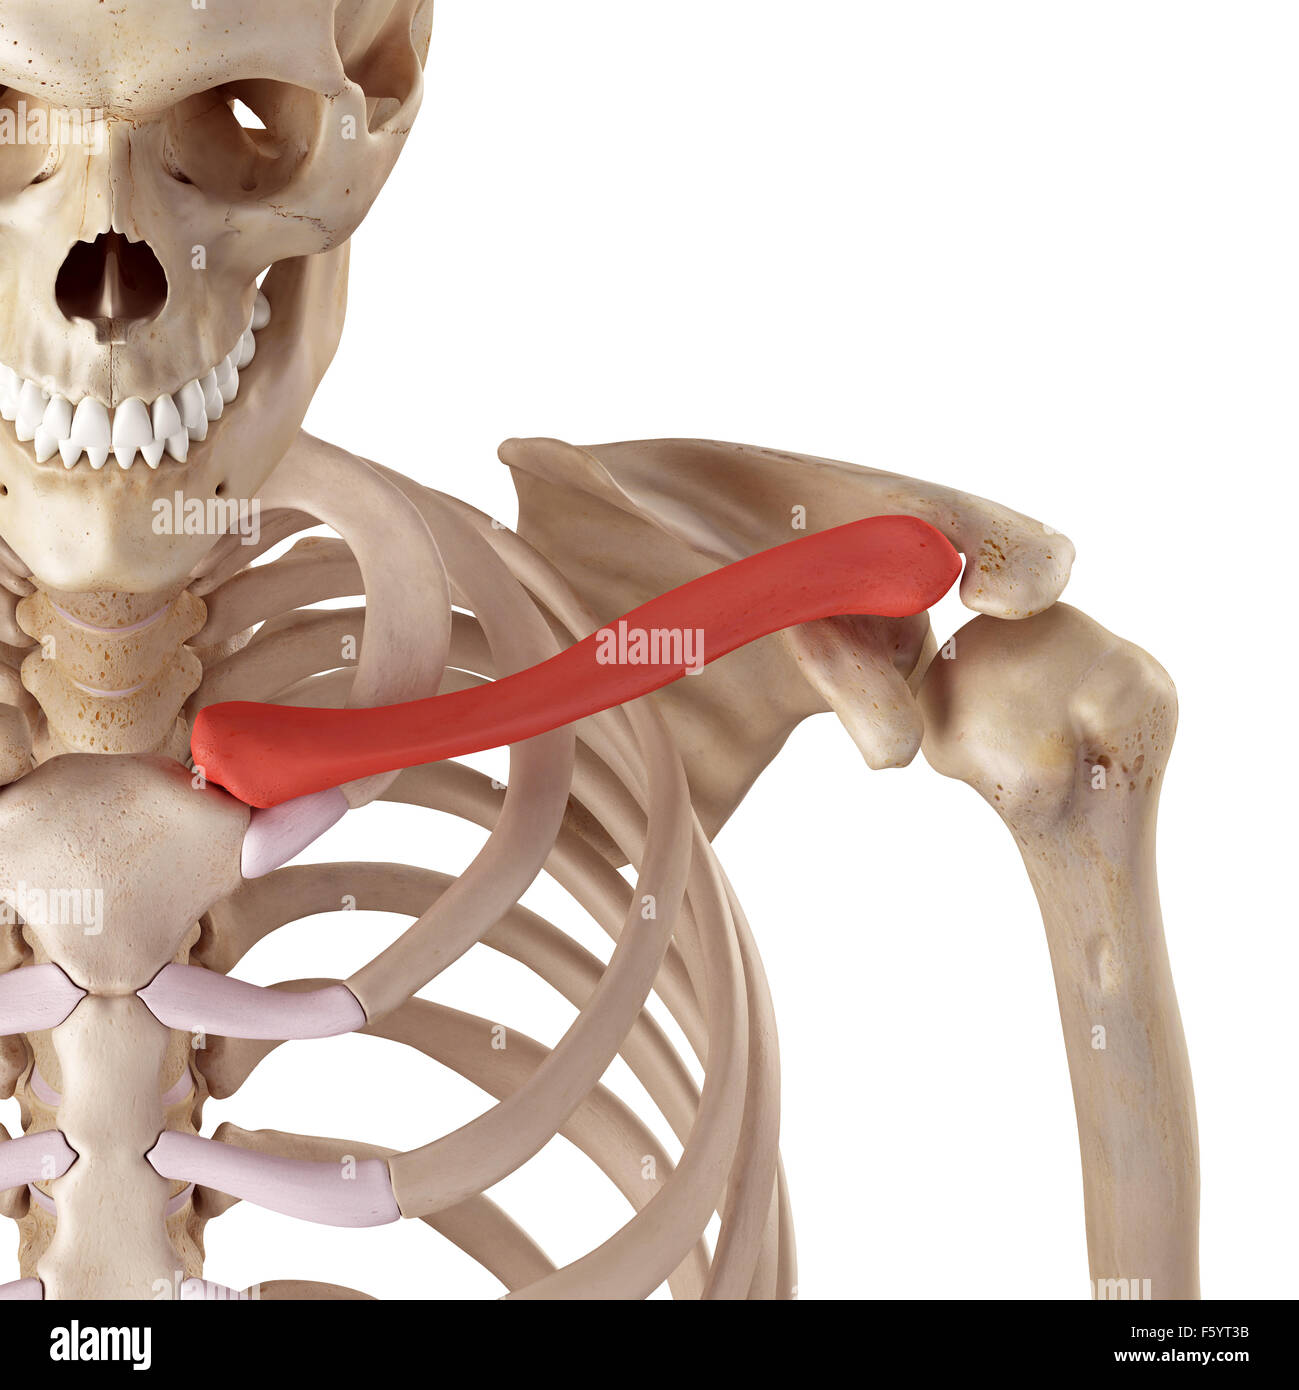 medical accurate illustration of the clavicle - Stock Image